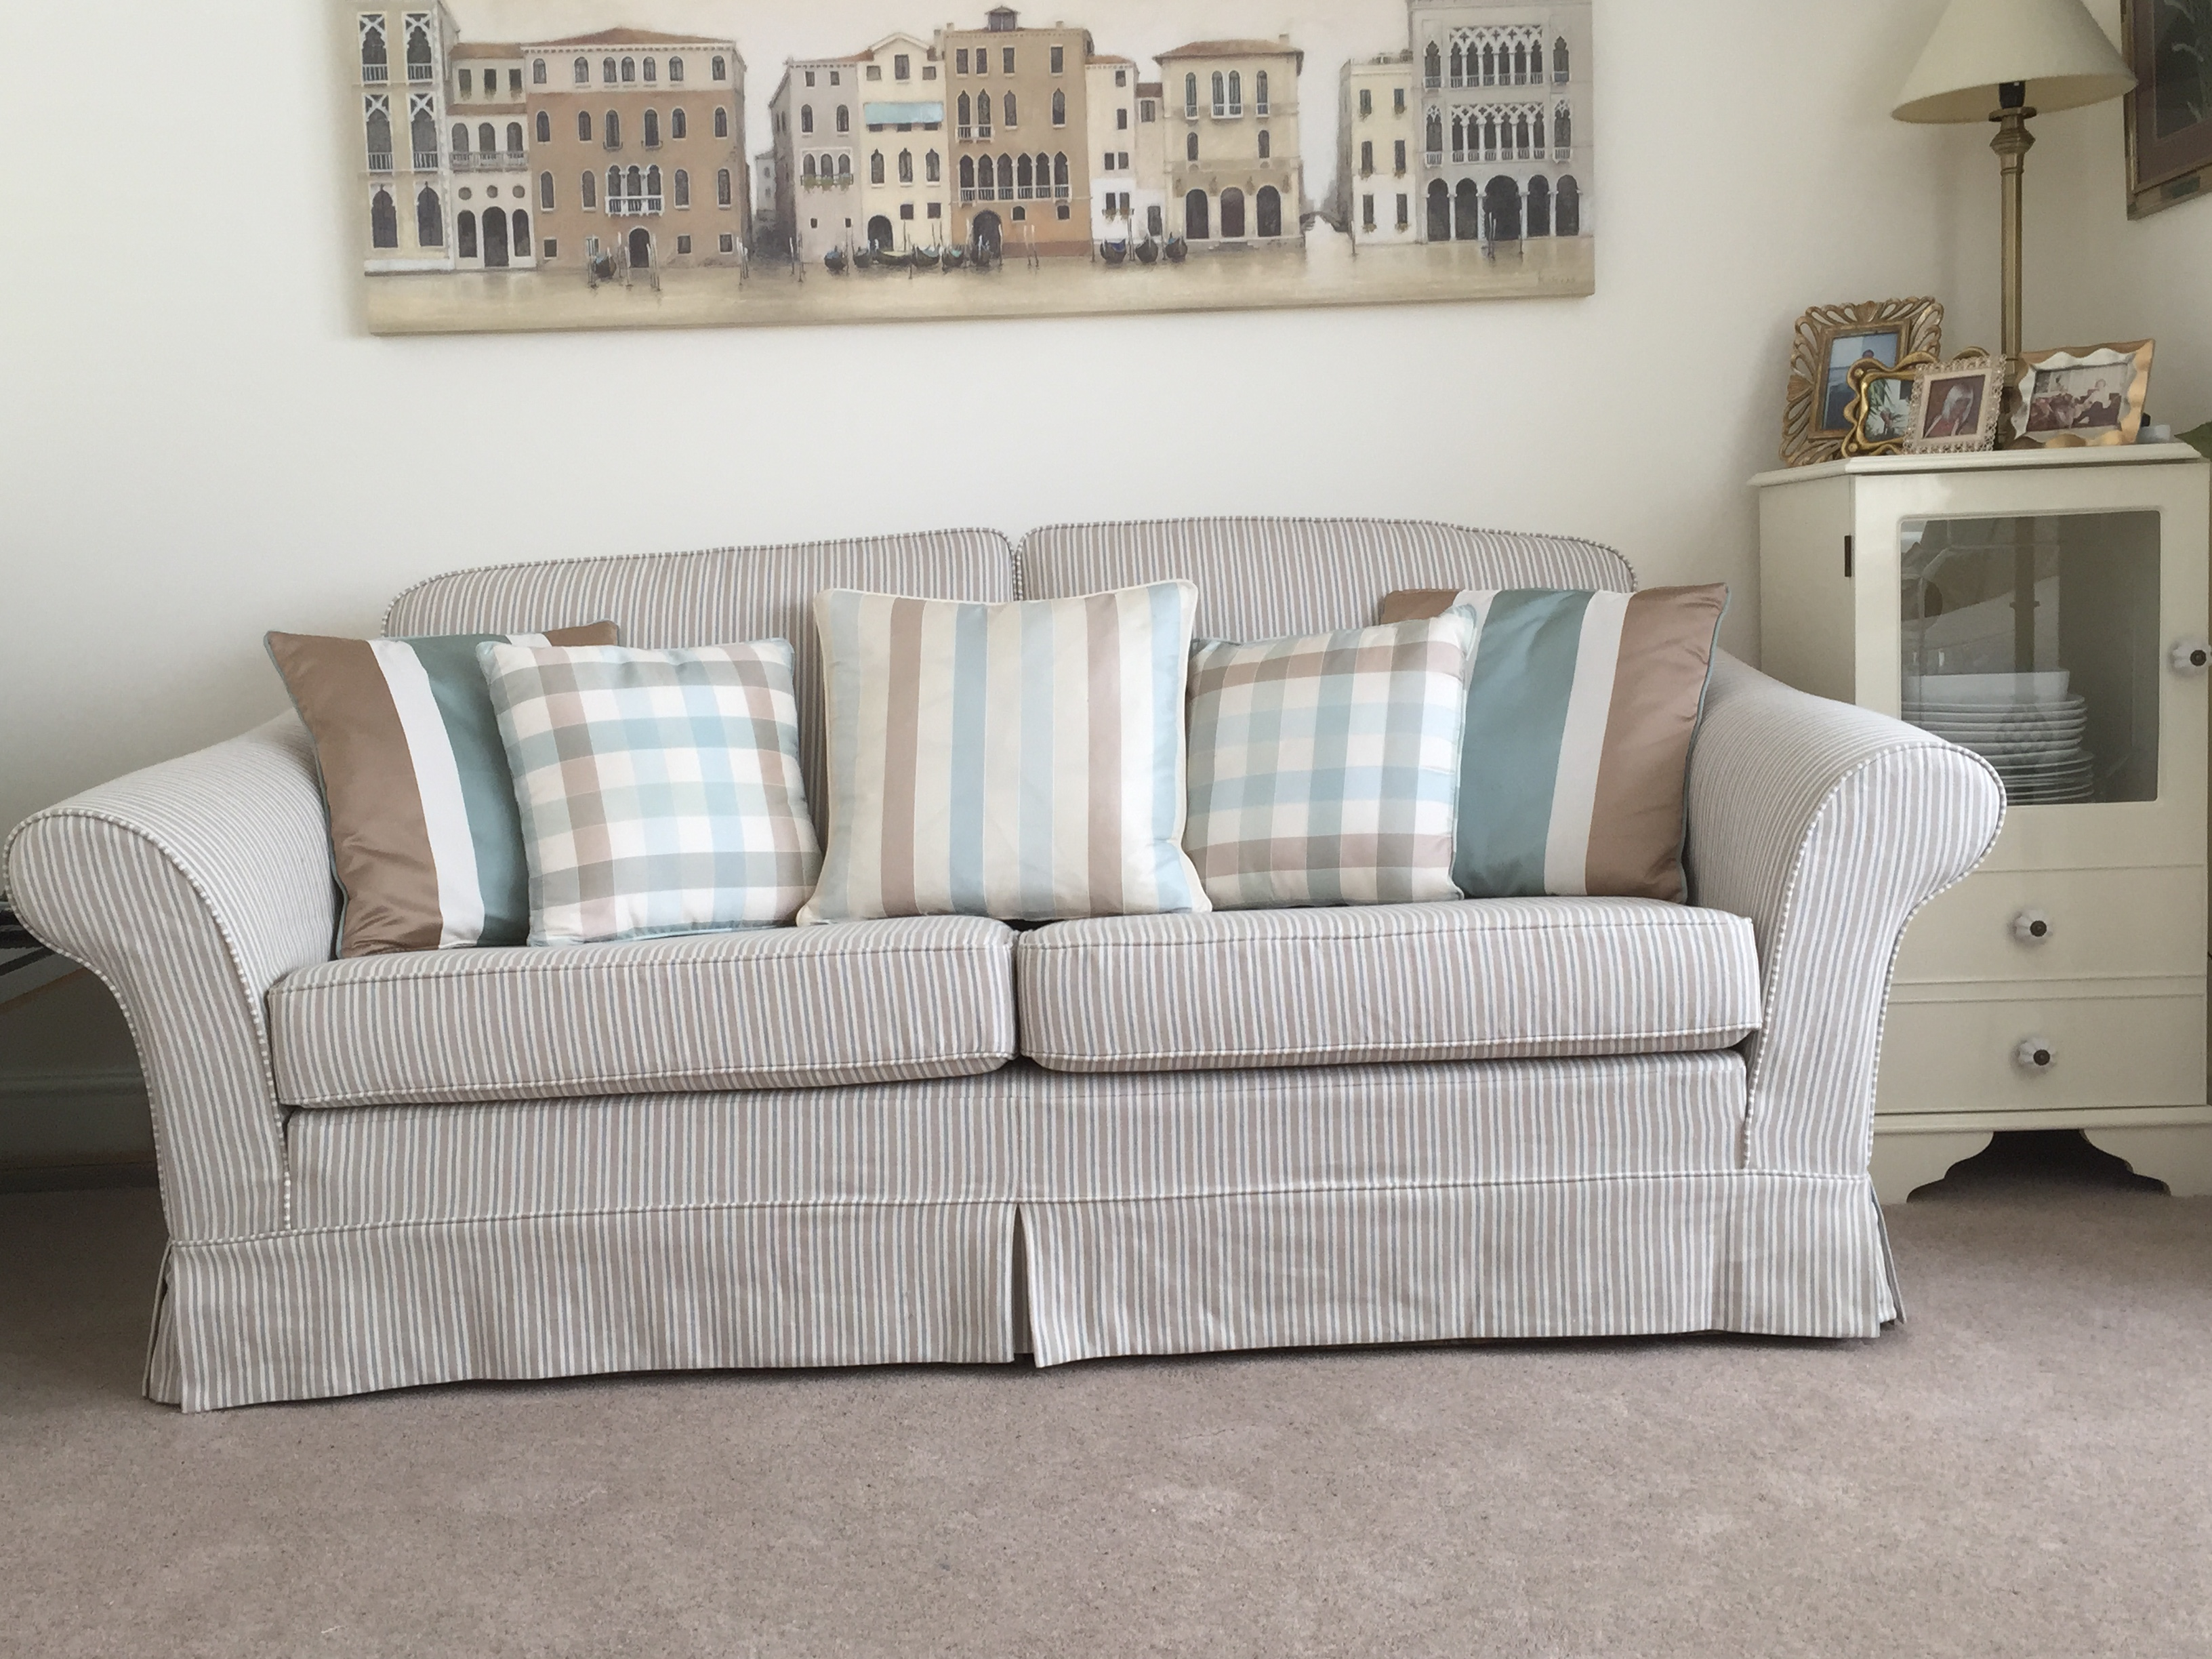 Eeze Covers - For new easy fitting Sofa covers and tailored loose covers